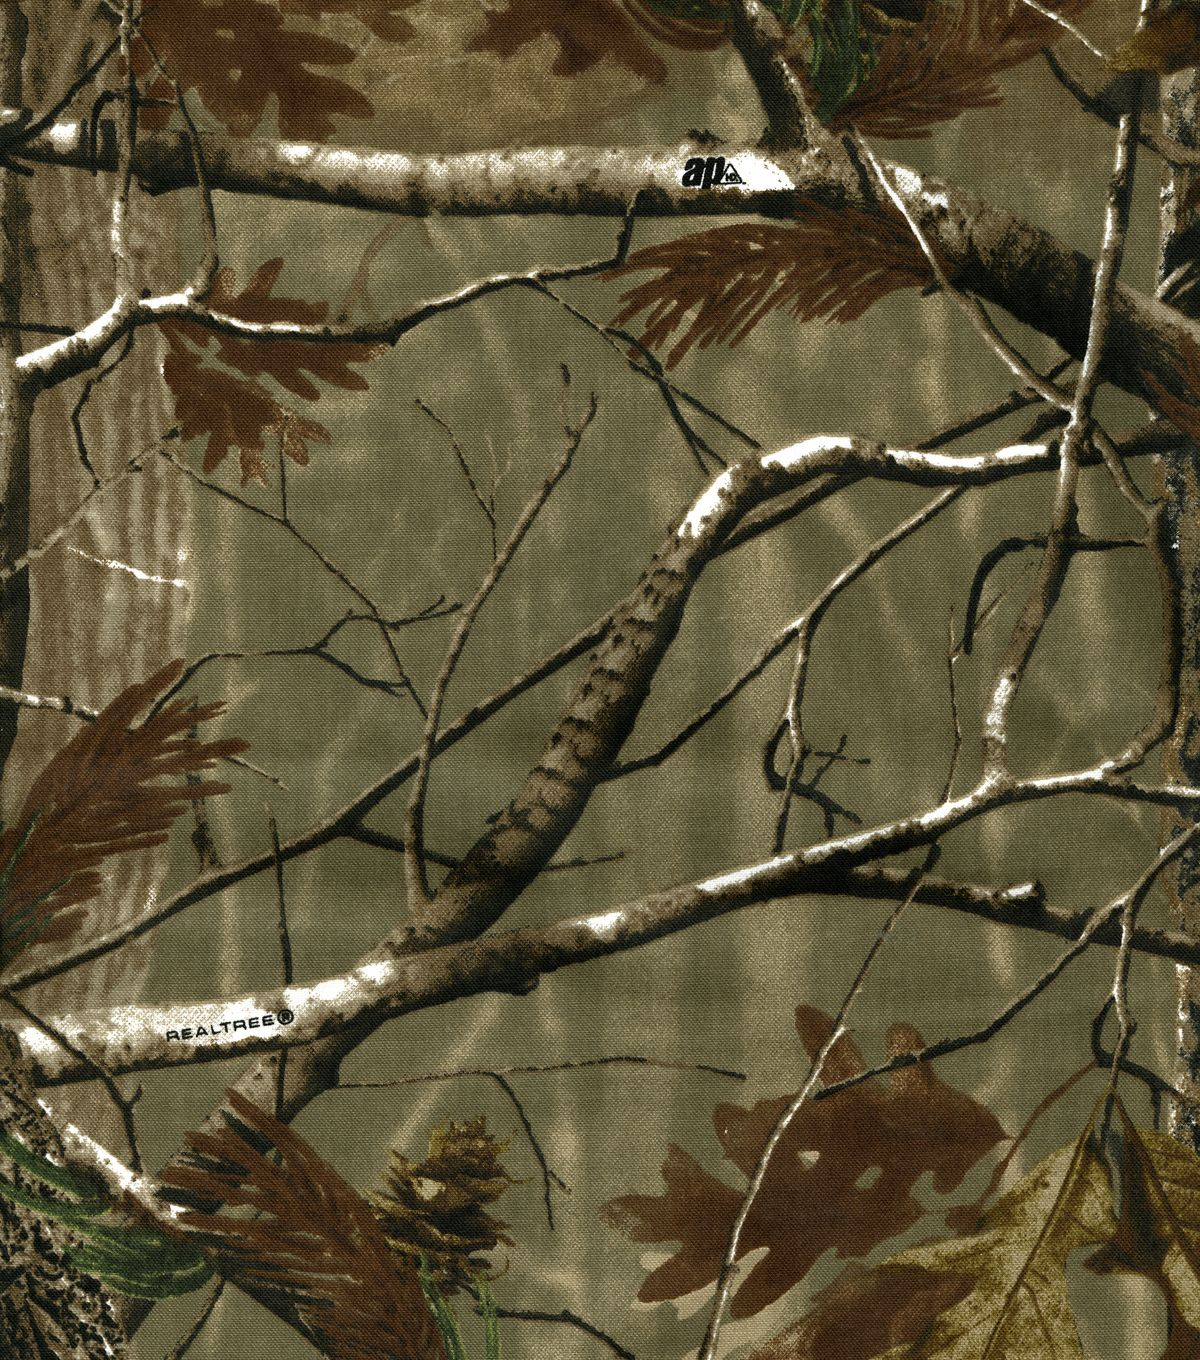 Realtree Duck Cloth Fabric Camouflage Real tree